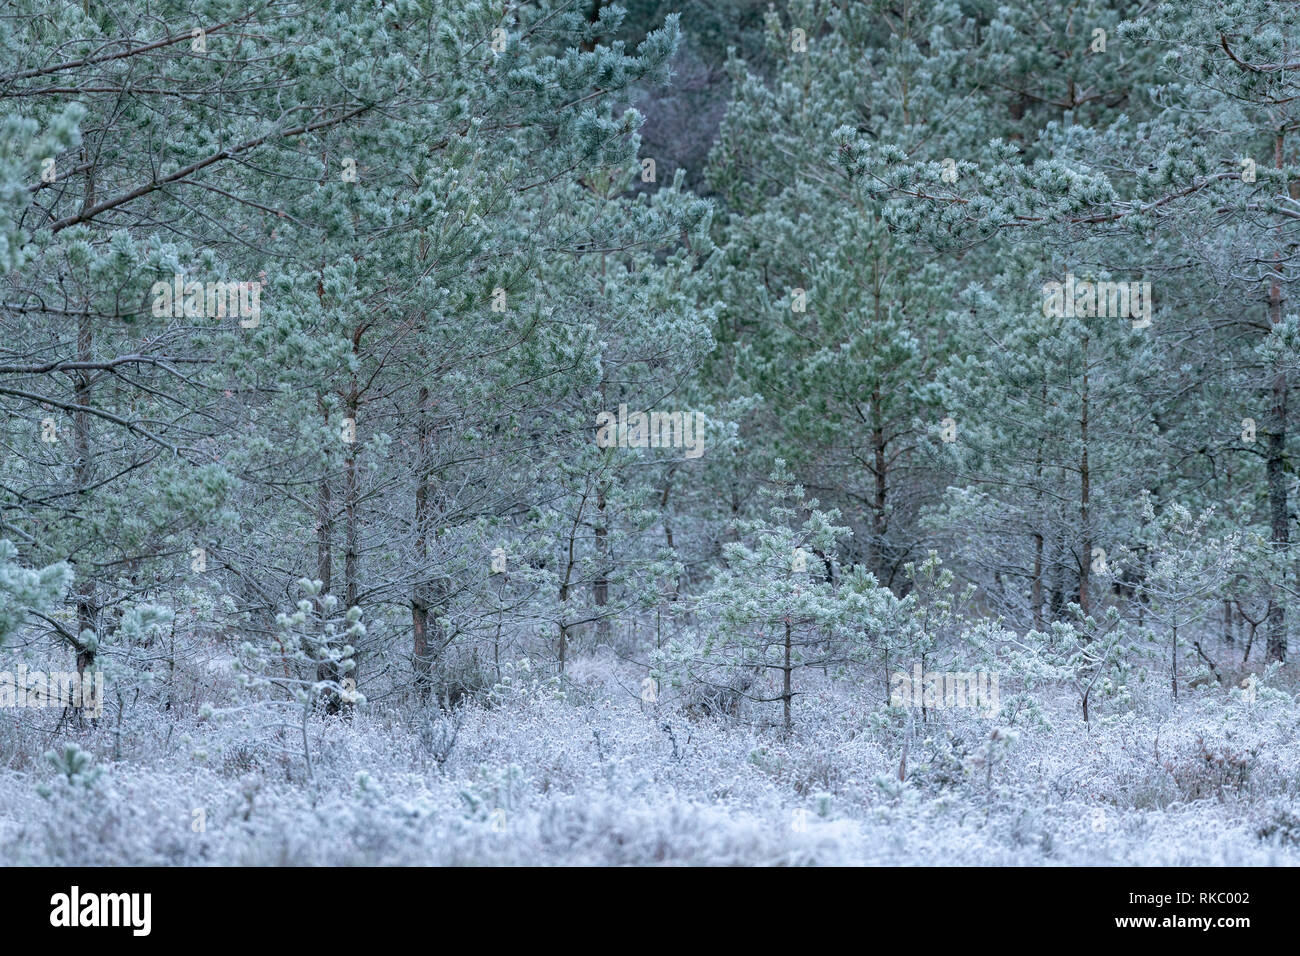 Scots Pine Saplings (Pinus Sylvestris), Covered in Frost, in a Woodland Clearing in Scotland - Stock Image